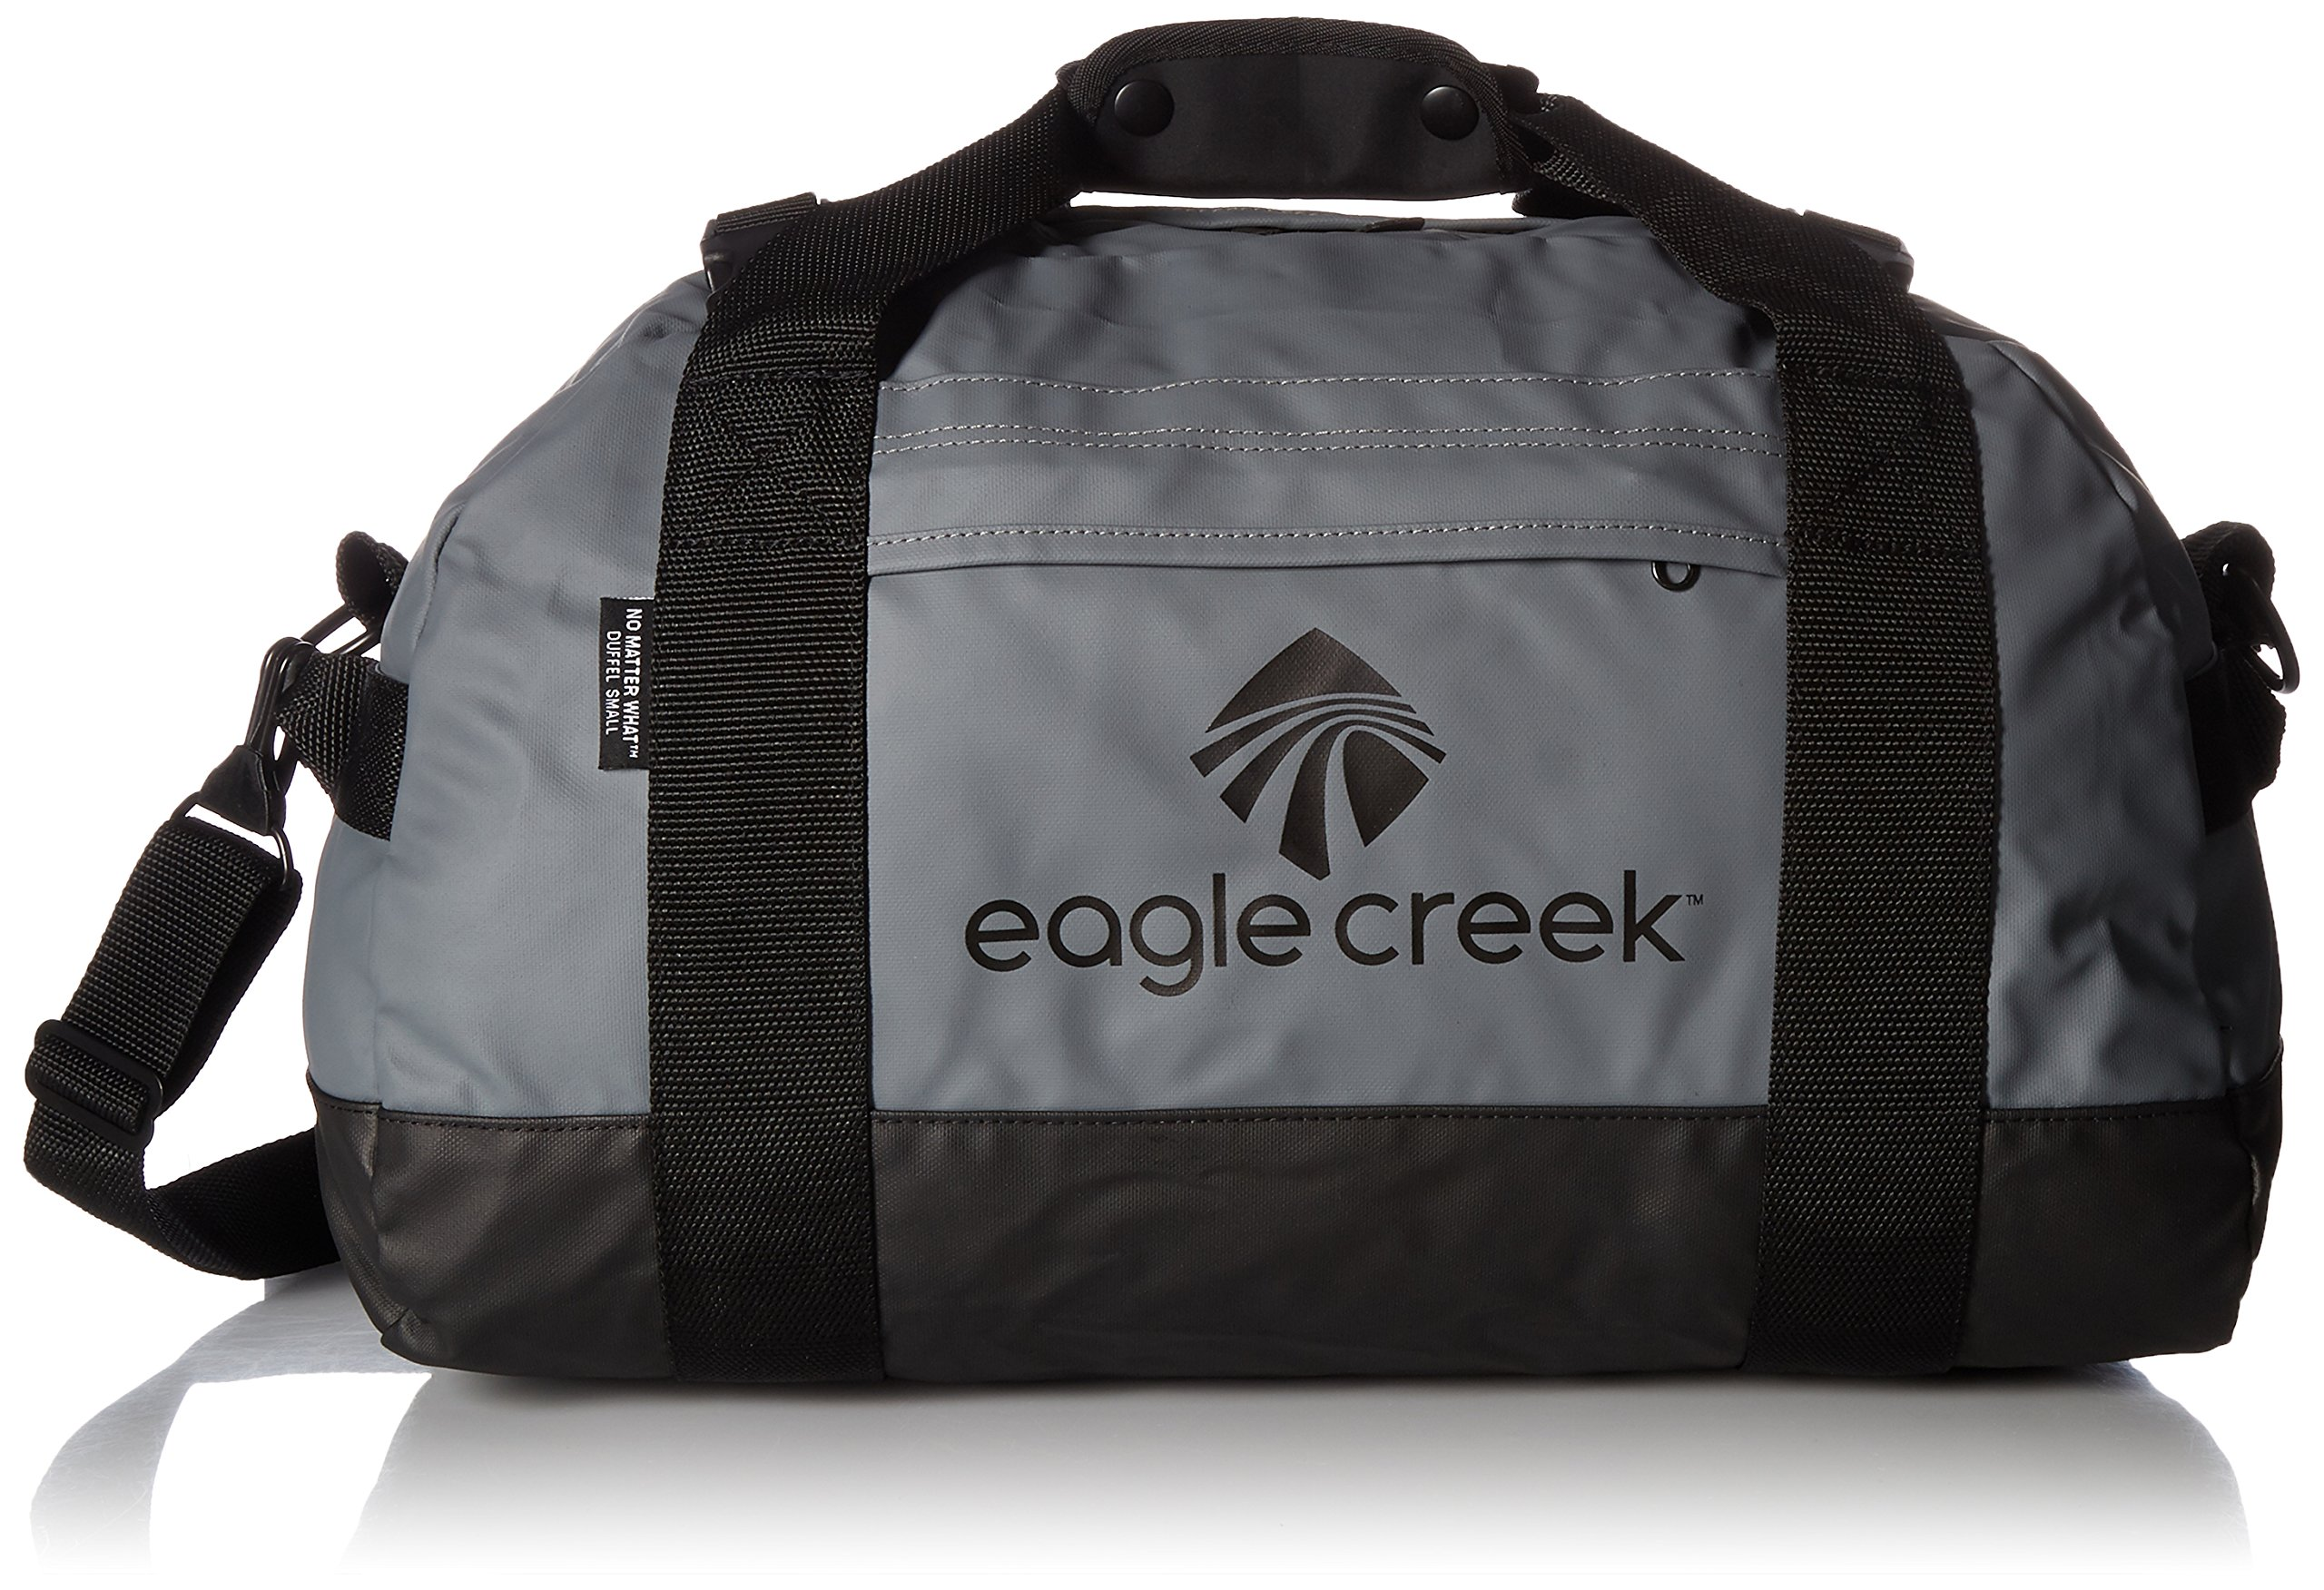 Eagle-Creek-No-Matter-What-Duffel-Bag-Small-Stone-Grey-2019-Reisegepck